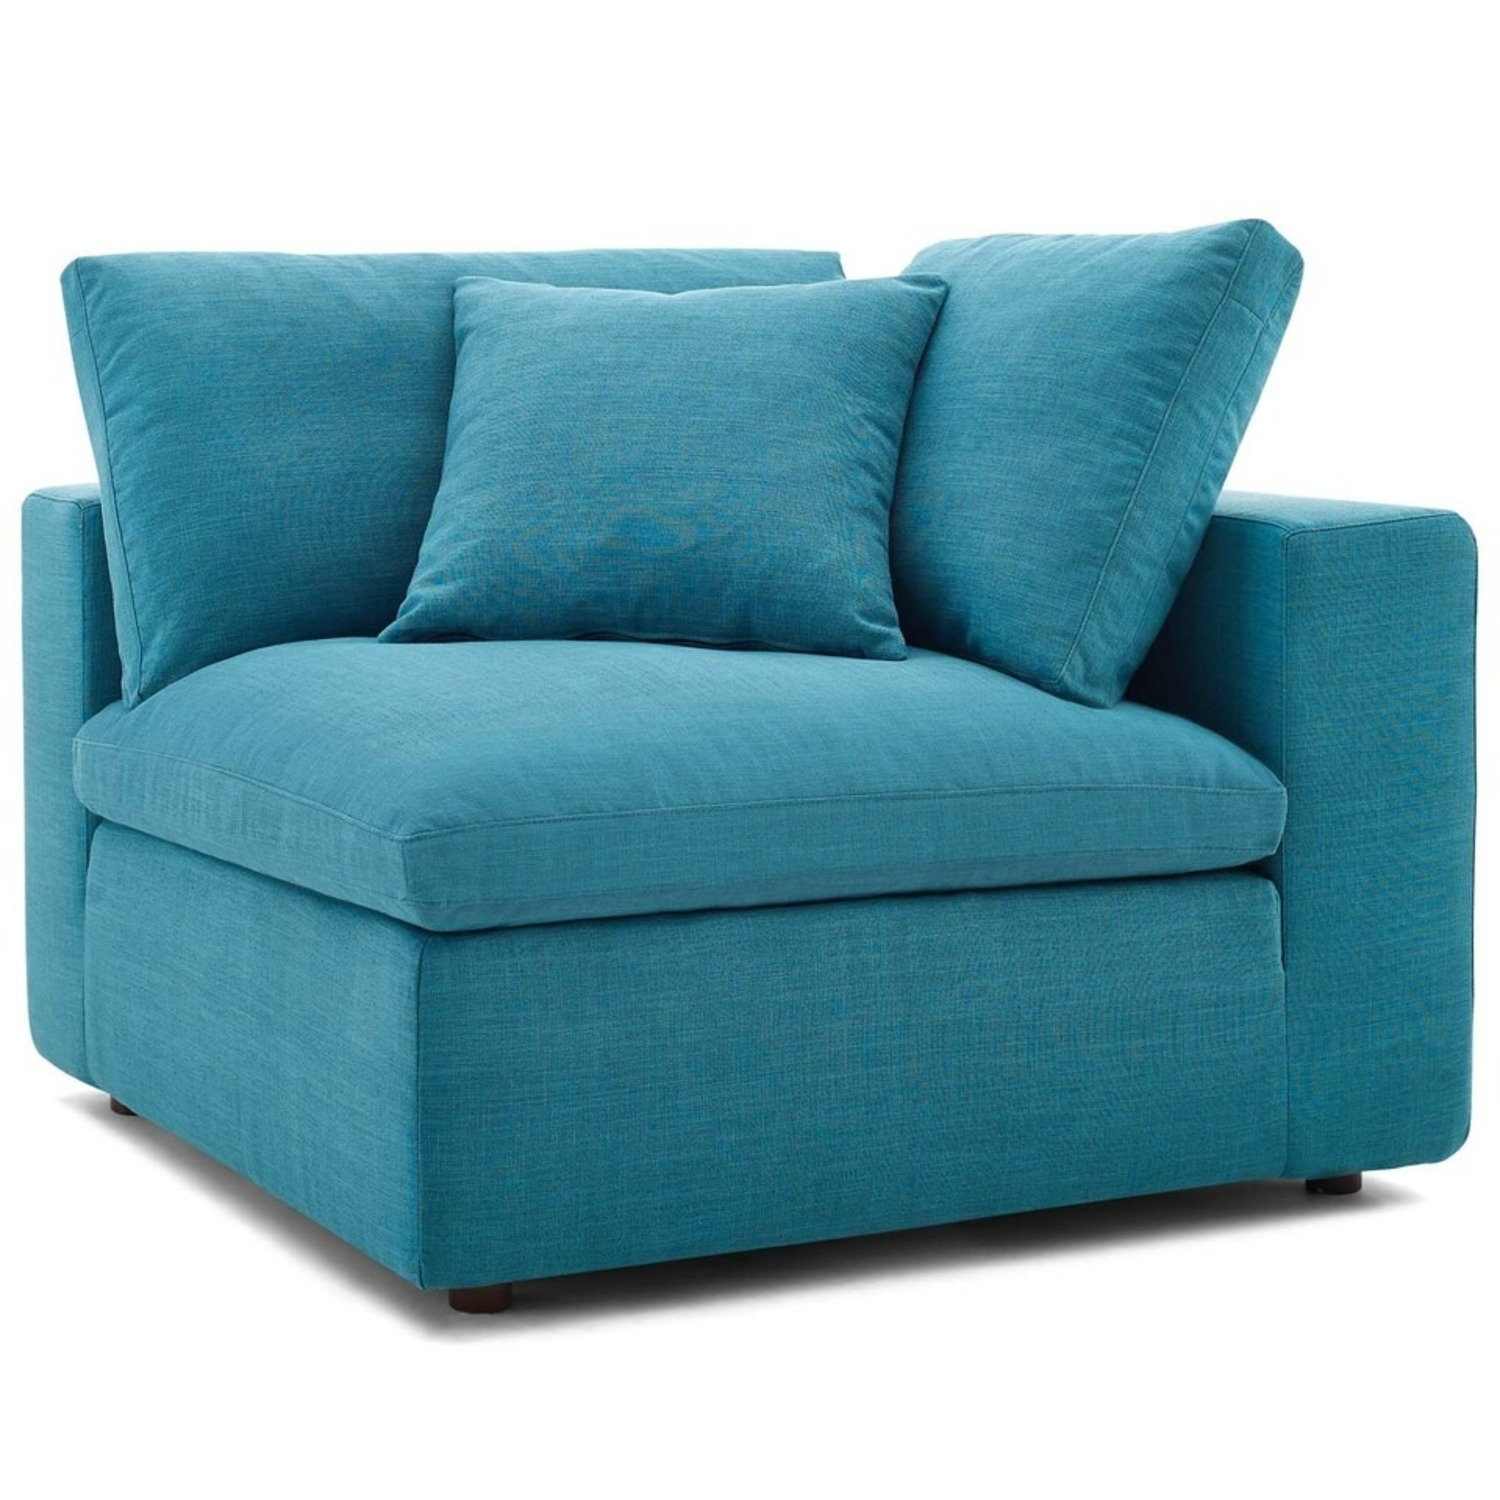 2-Piece Sectional Sofa In Teal Linen Fabric - image-4